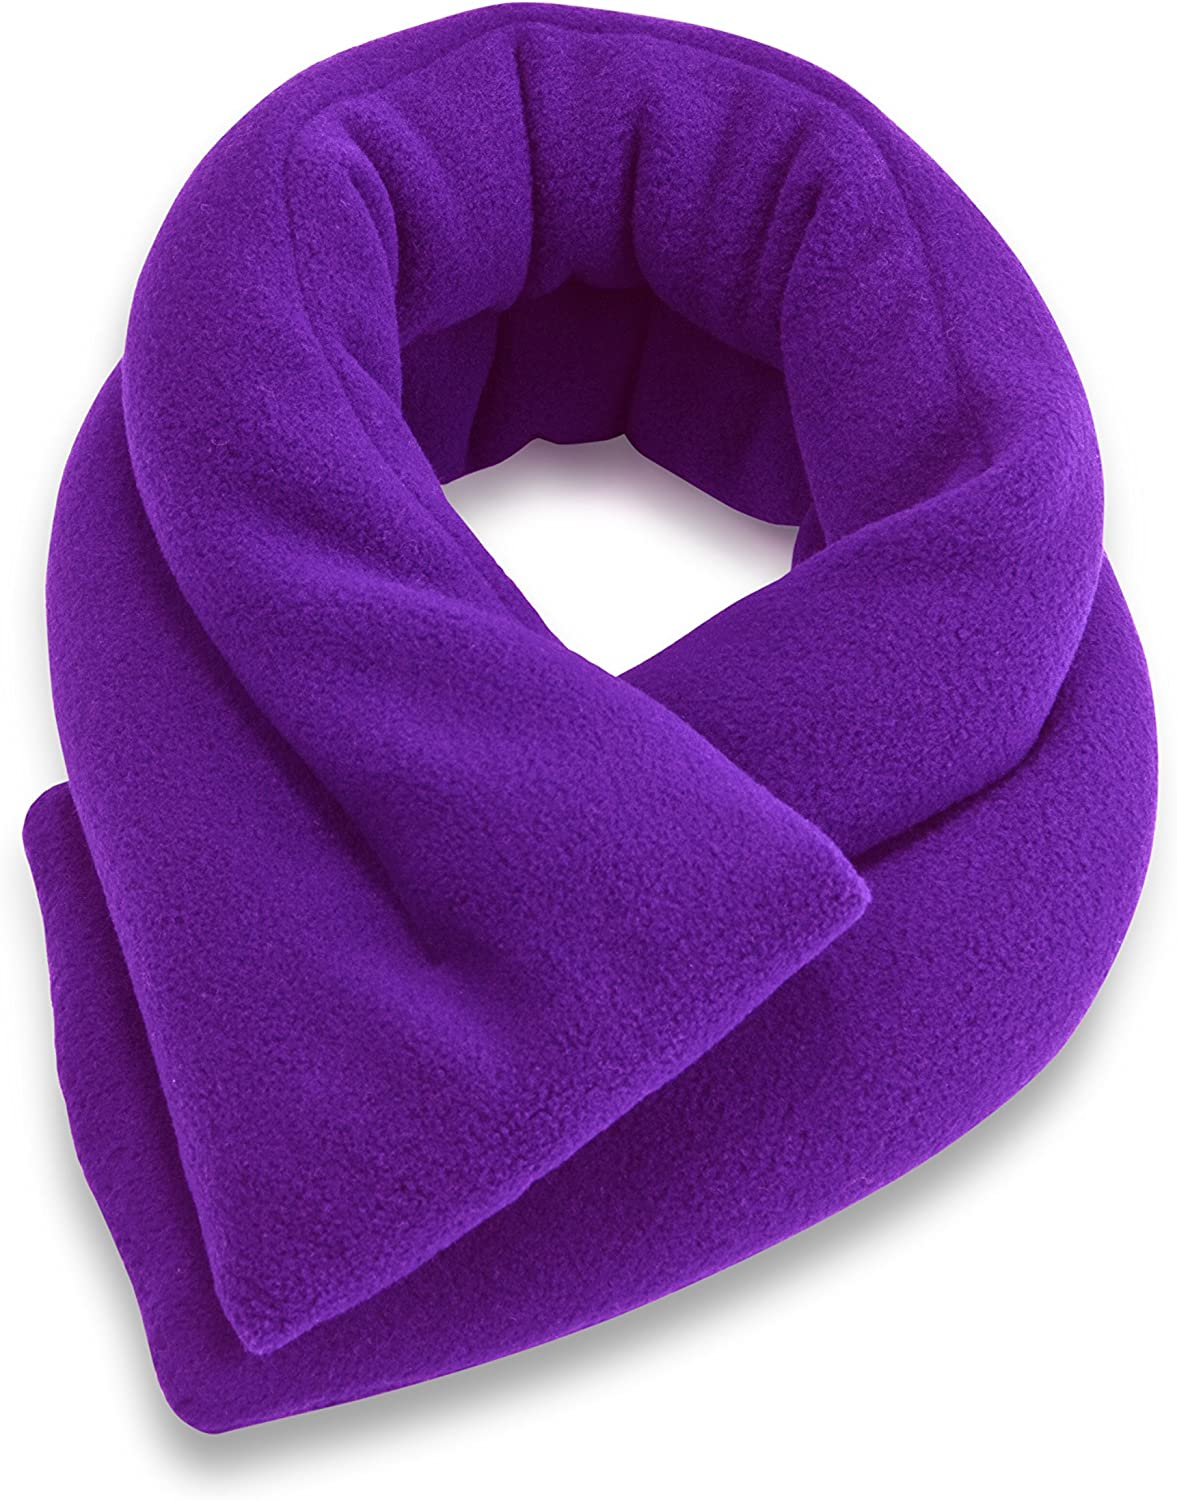 Sunny Bay Microwavable Neck Heating Wrap - Bean Bag Heat Pad for Neck Pain Relief, Microwave, Hot & Cold Therapy, Extra Long Shoulder Heat Pack, Back Pain Relief (Violet)